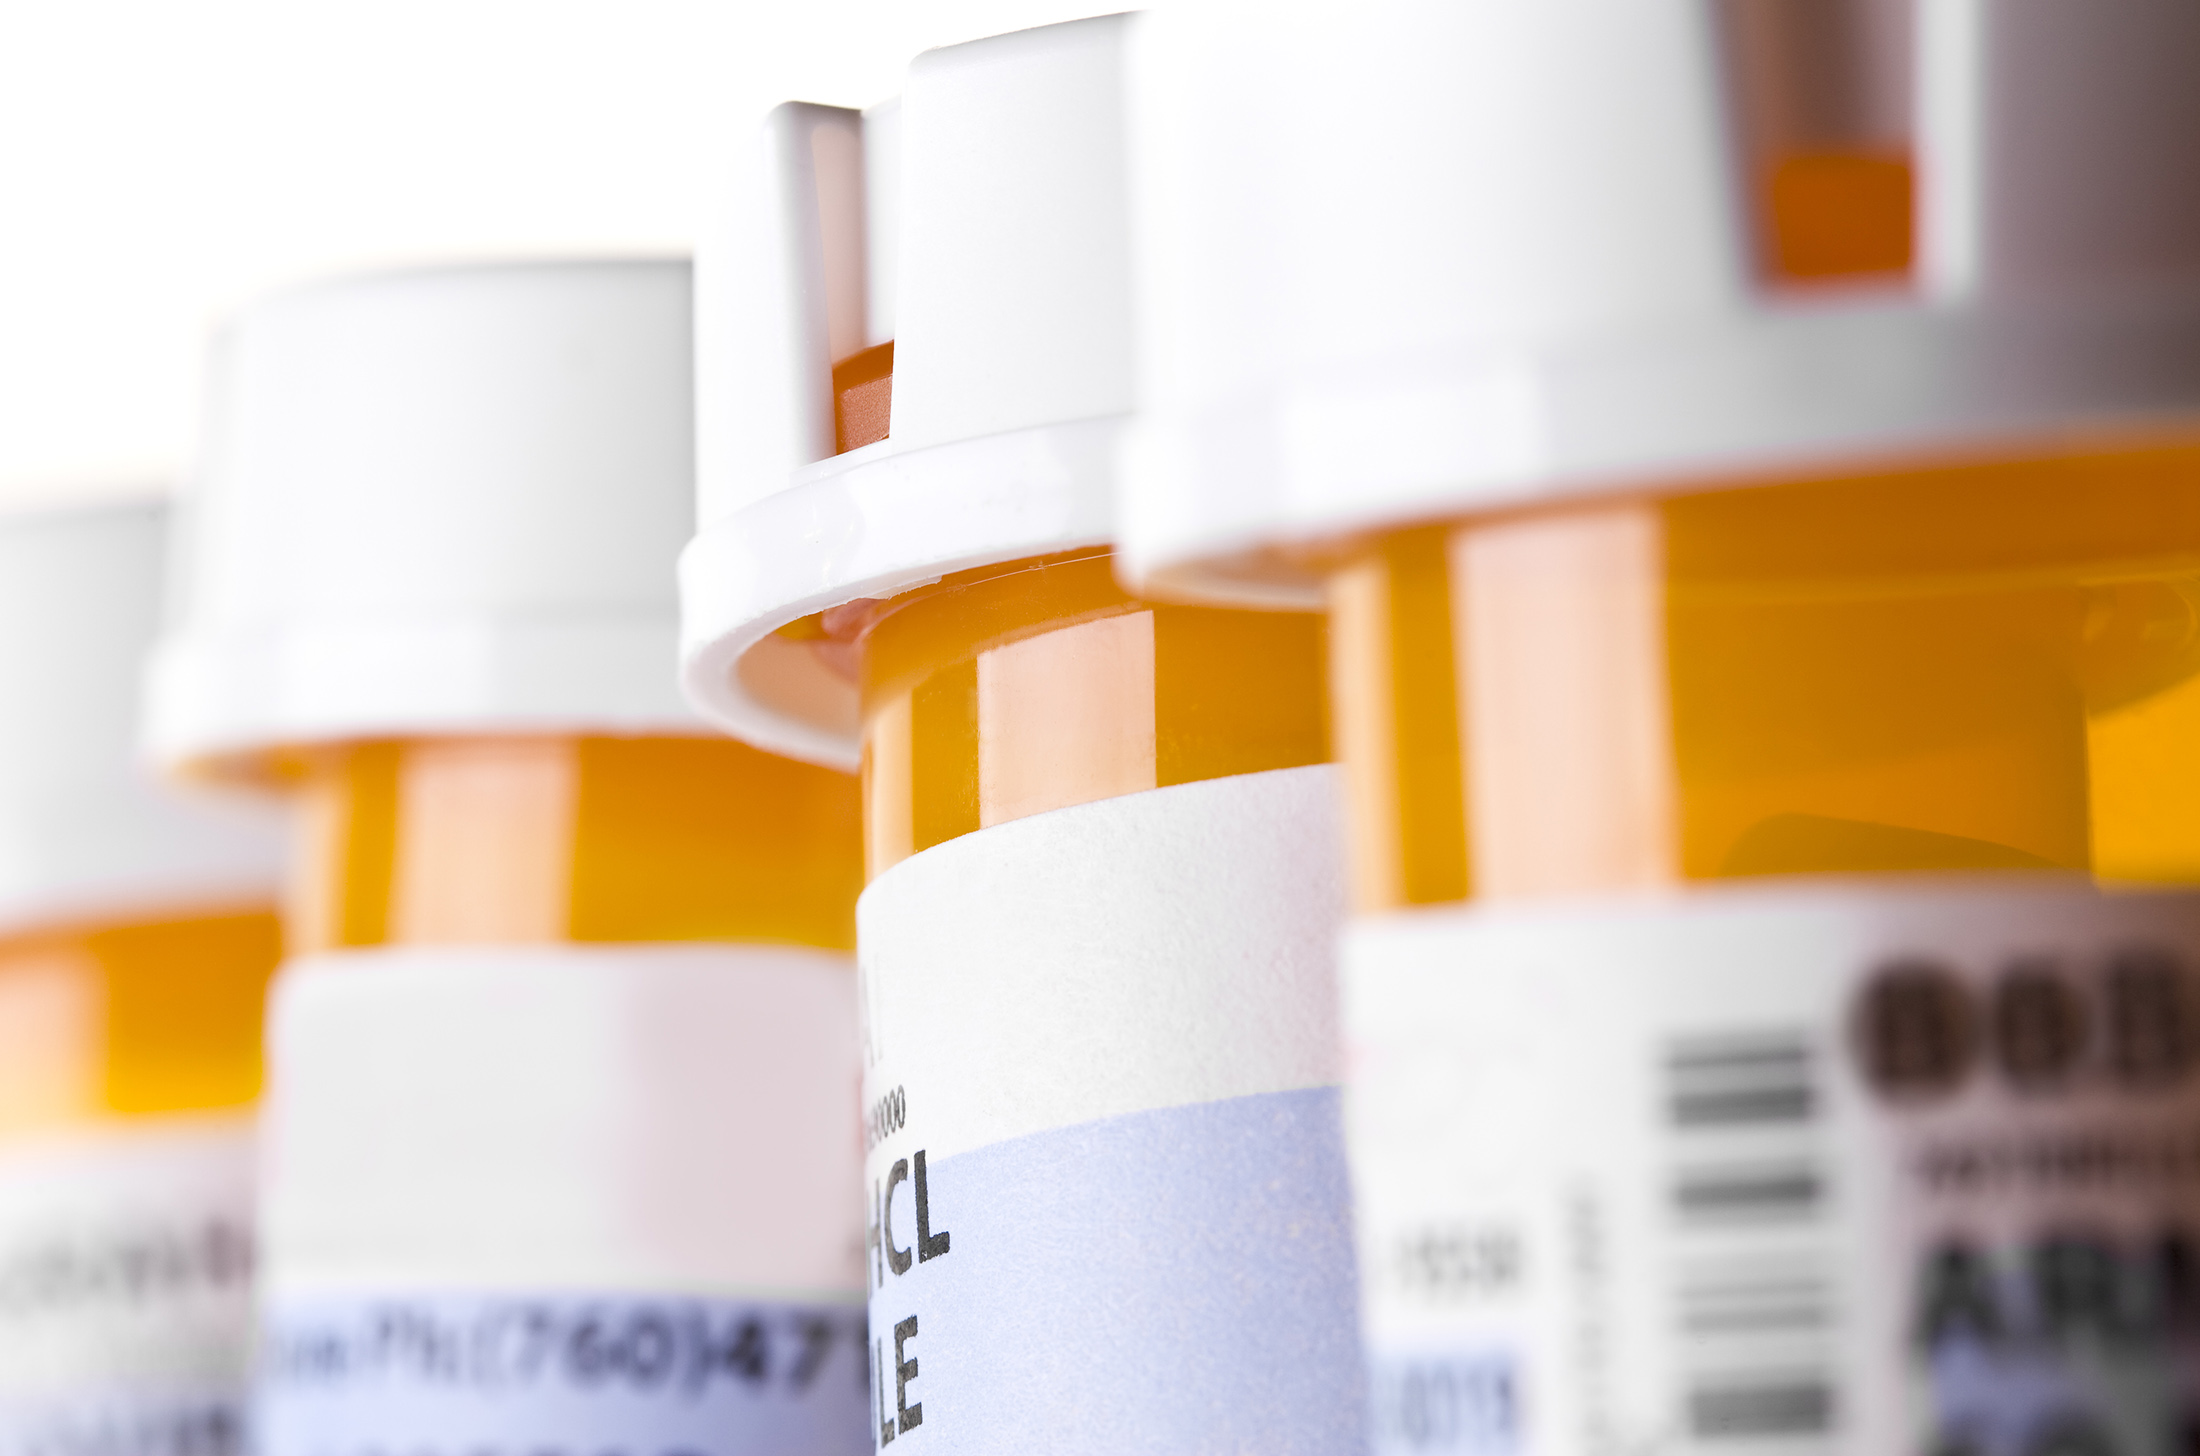 Valsartan Recall: Tainted Heart Drugs Face Lawsuits Over Cancer